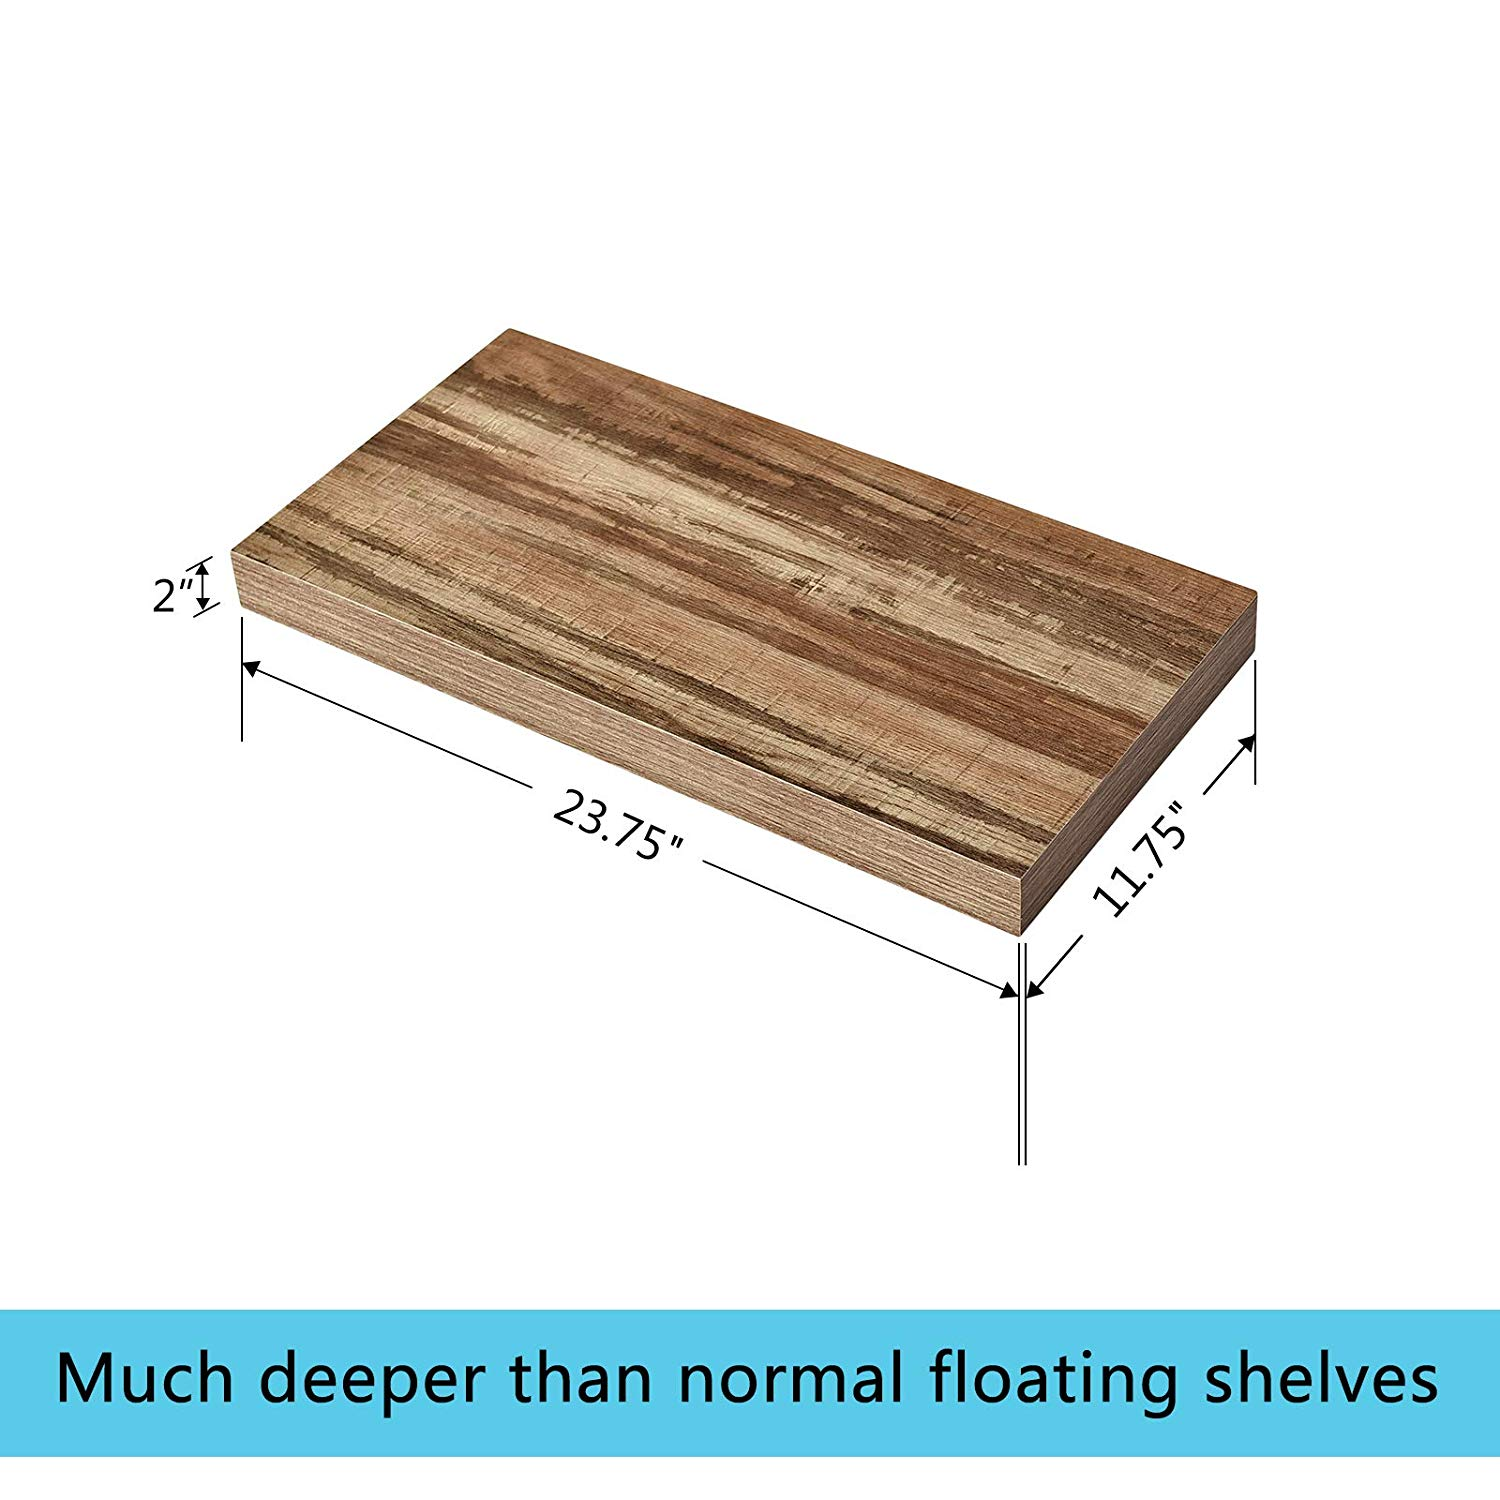 welland deep wall shelves floating shelf large inches deeper than others retro home kitchen velcro command strips weight oak stove beams installing luxury vinyl tile over linoleum